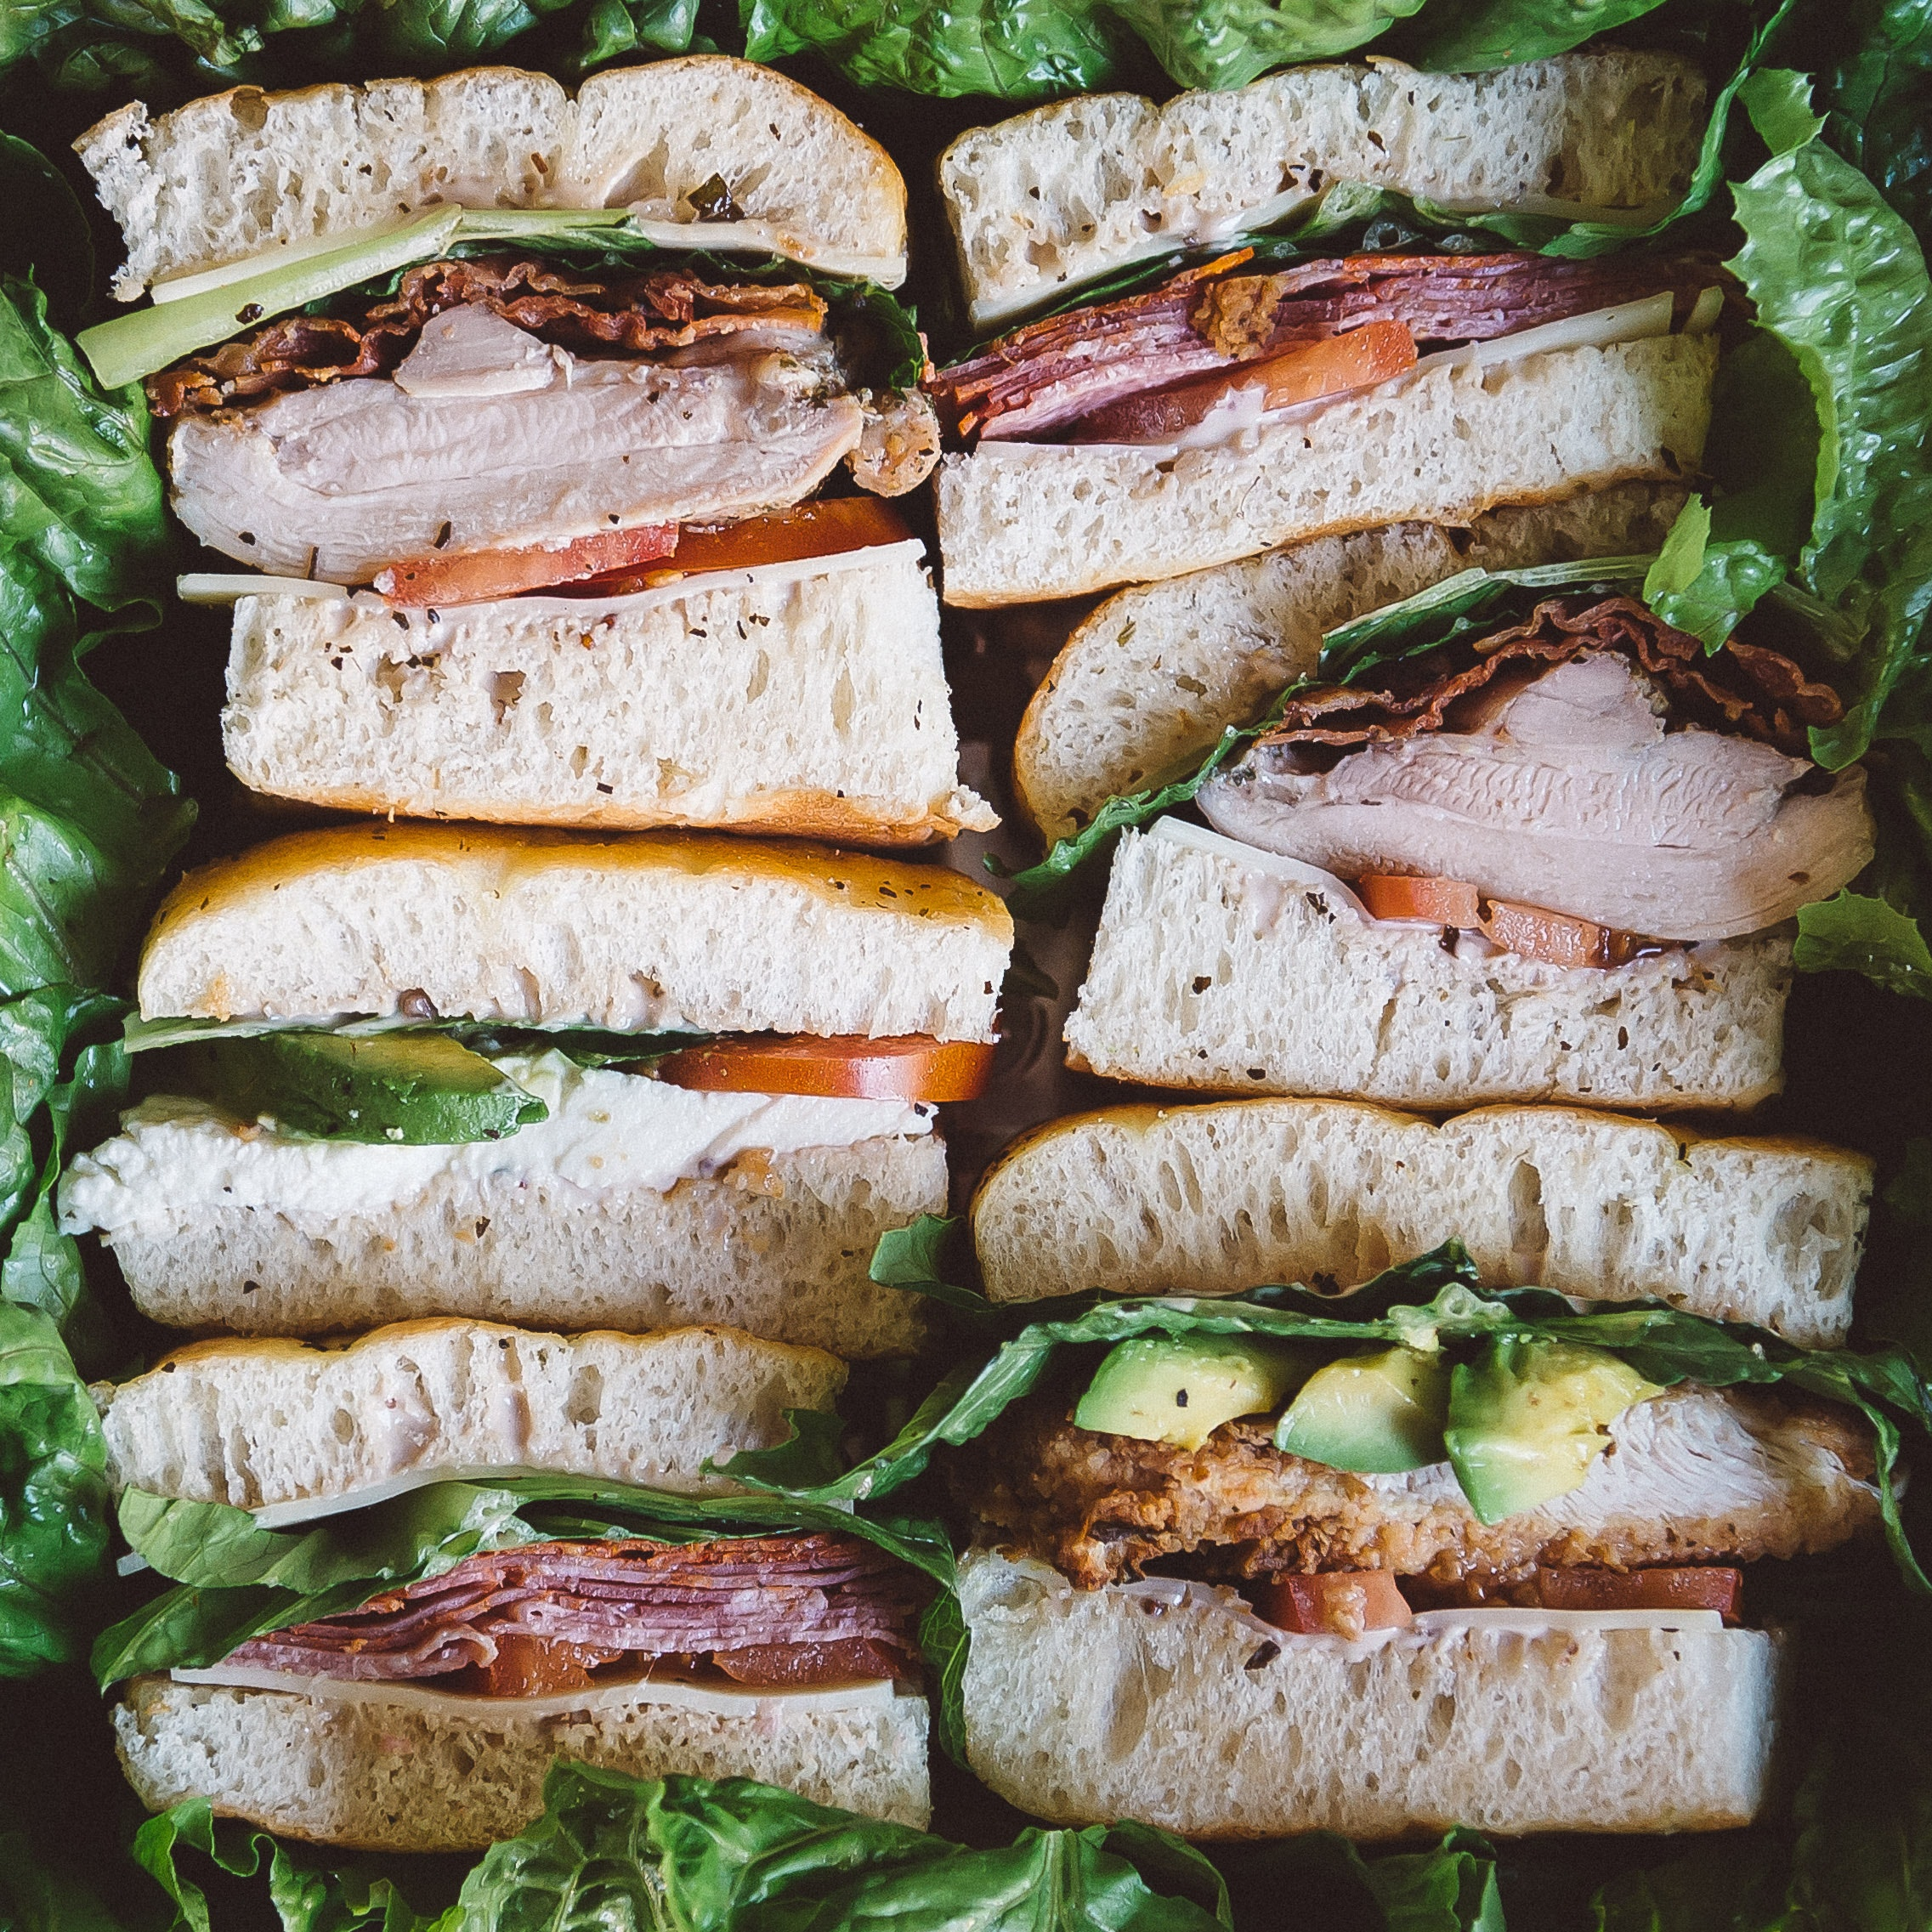 SMALL FULL FLAVORED SANDWICH TRAY